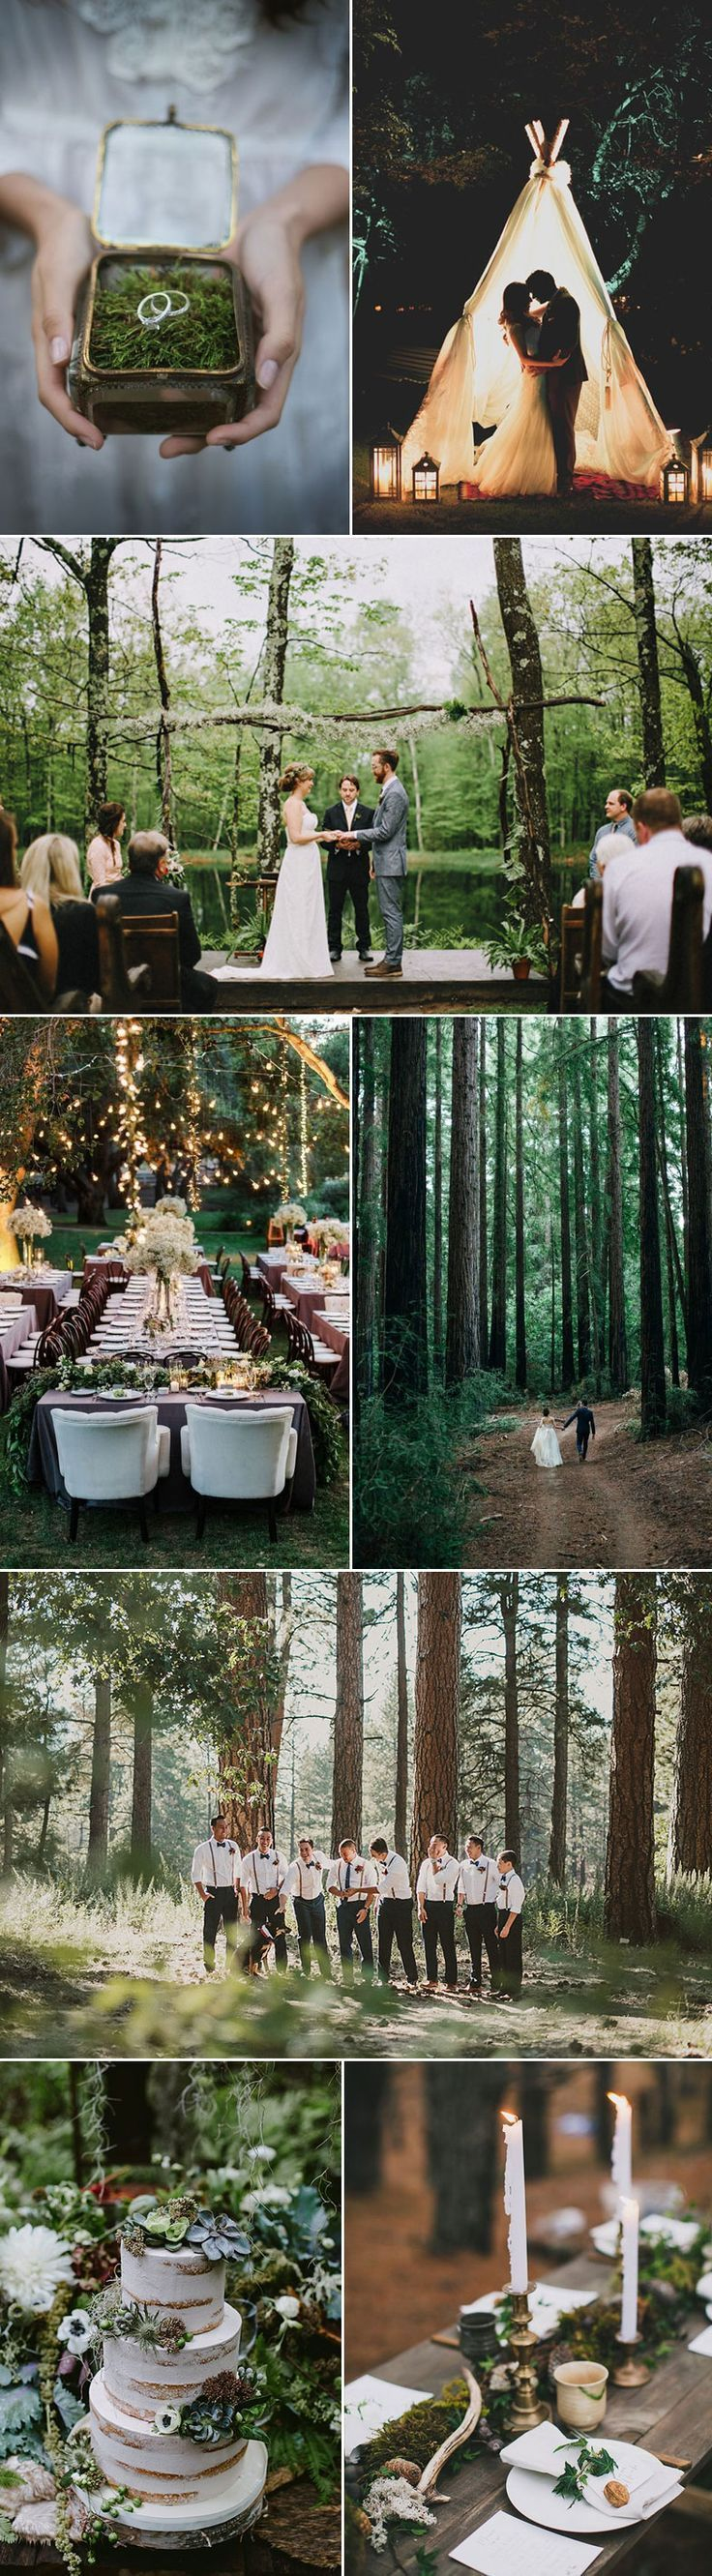 "Celebrate the splendors of the outdoors with a wildly chic Forest Wedding. The rustic charms of an outdoor setting are undeniable. If you envision saying ""I Do"" with a backdrop of redwood trees and mountain lakes, a forest venue is perfect for you. Start here for inspiration: https://www.bows-n-ties.com/mens-fashion-tips/wedding-inspiration-for-forest-weddings/"